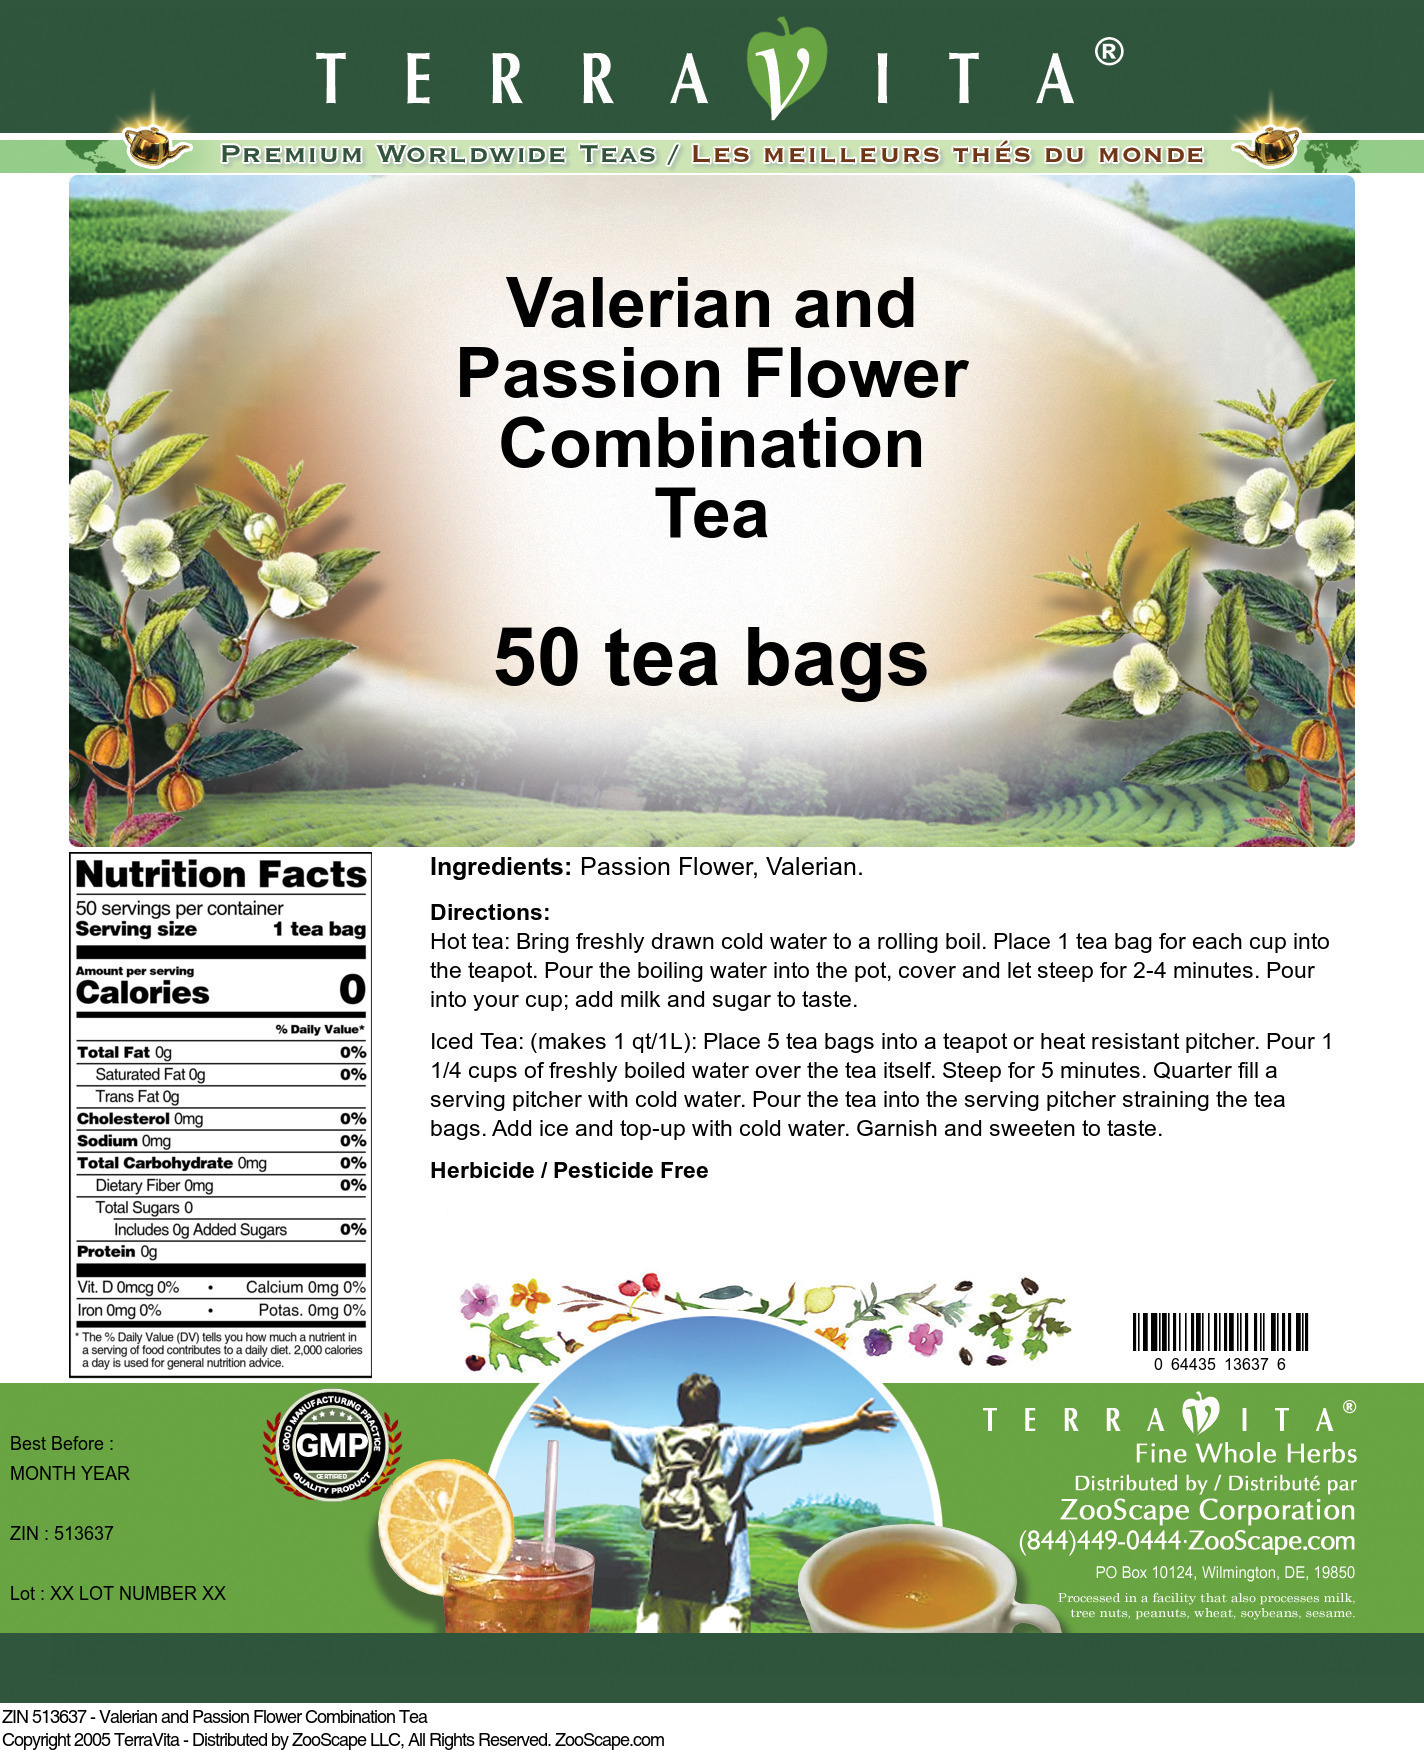 Valerian and Passion Flower Combination Tea